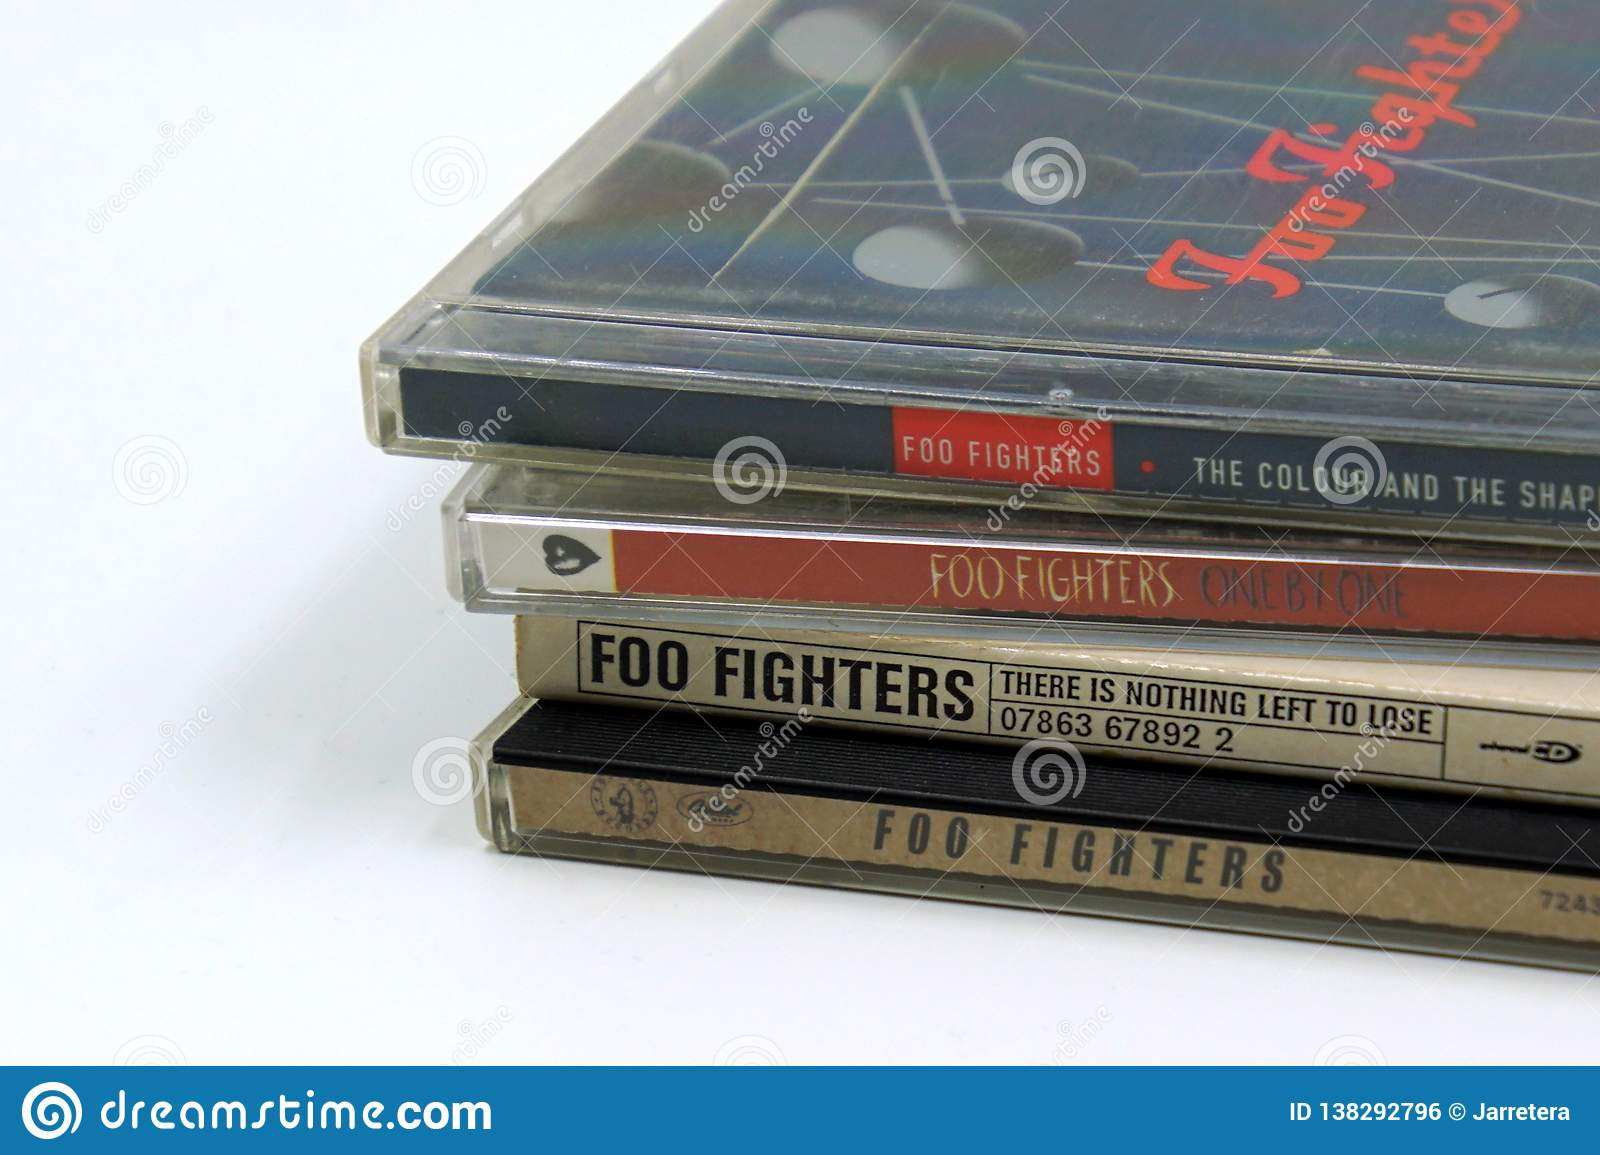 Foo Fighters CD albums  editorial photo  Image of colour - 138292796